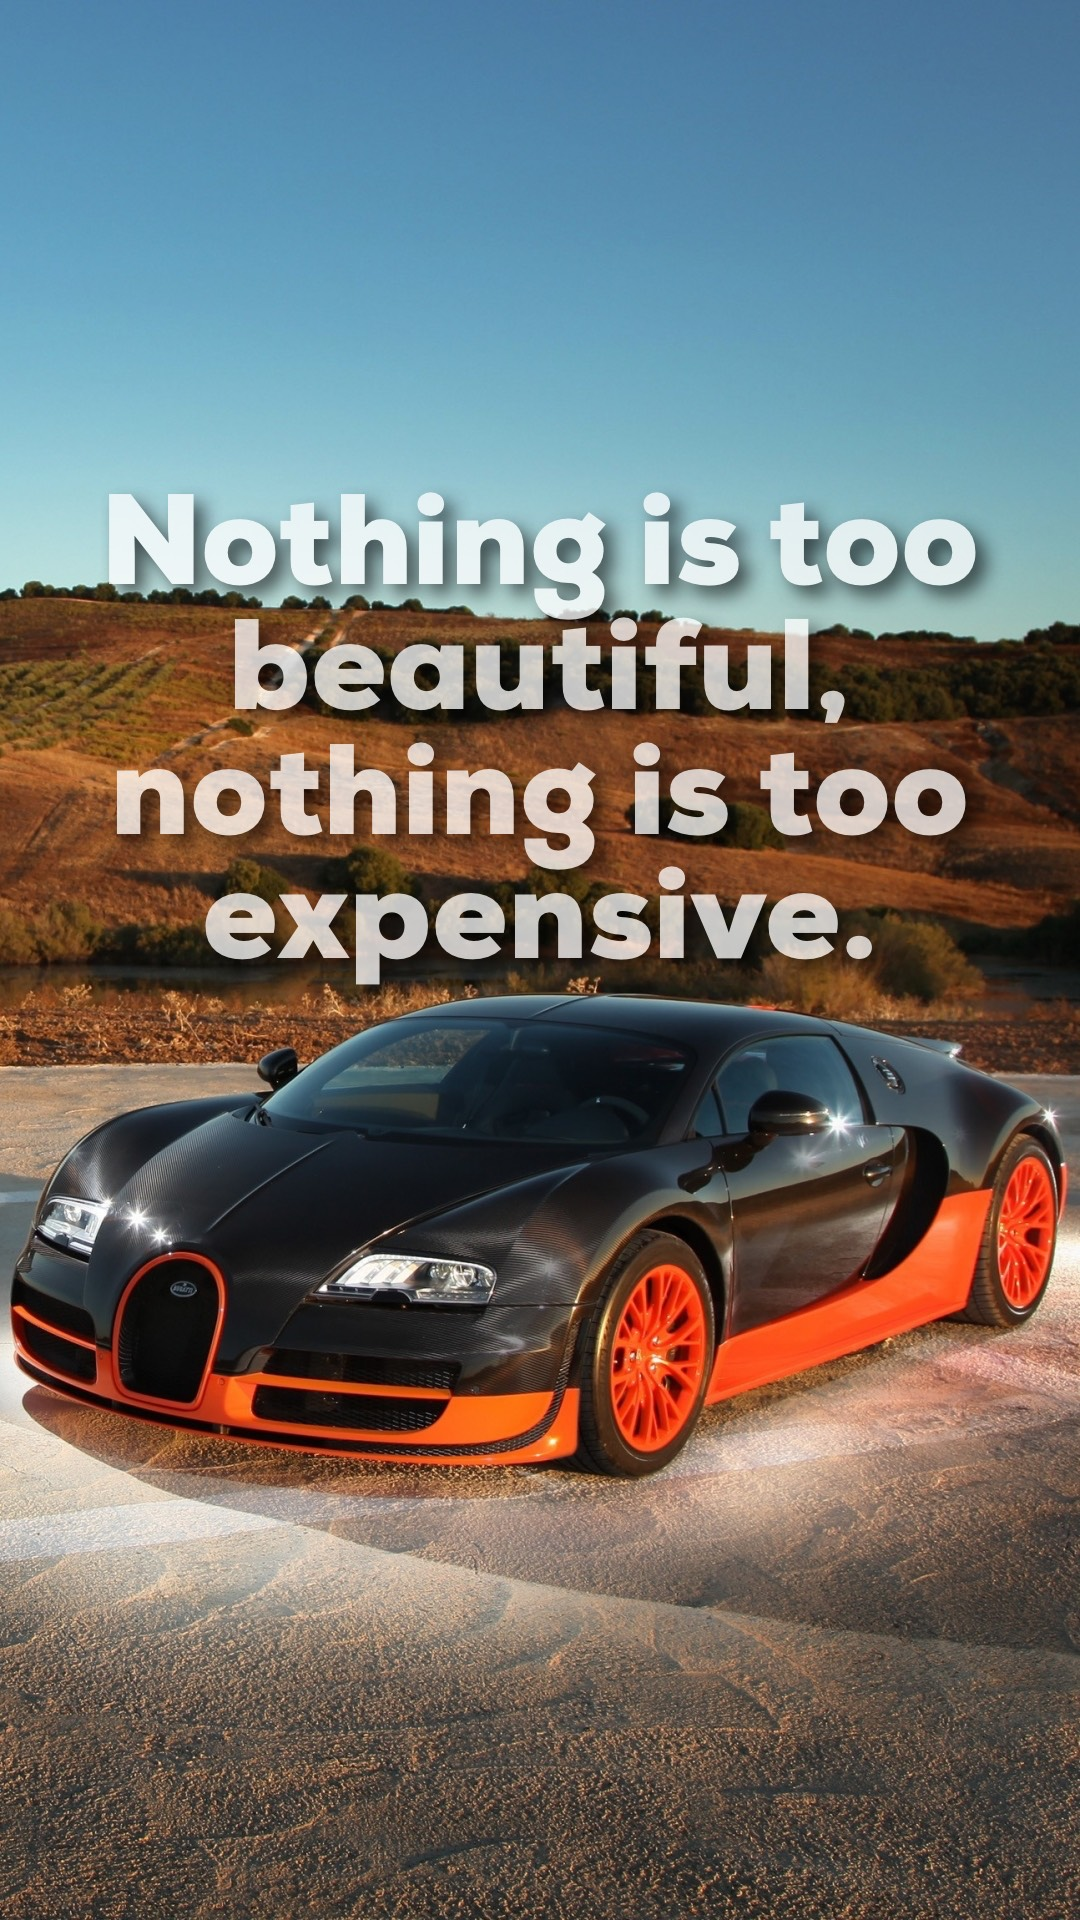 Another Phone Wallpaper With A Quote From Ettore Bugatti